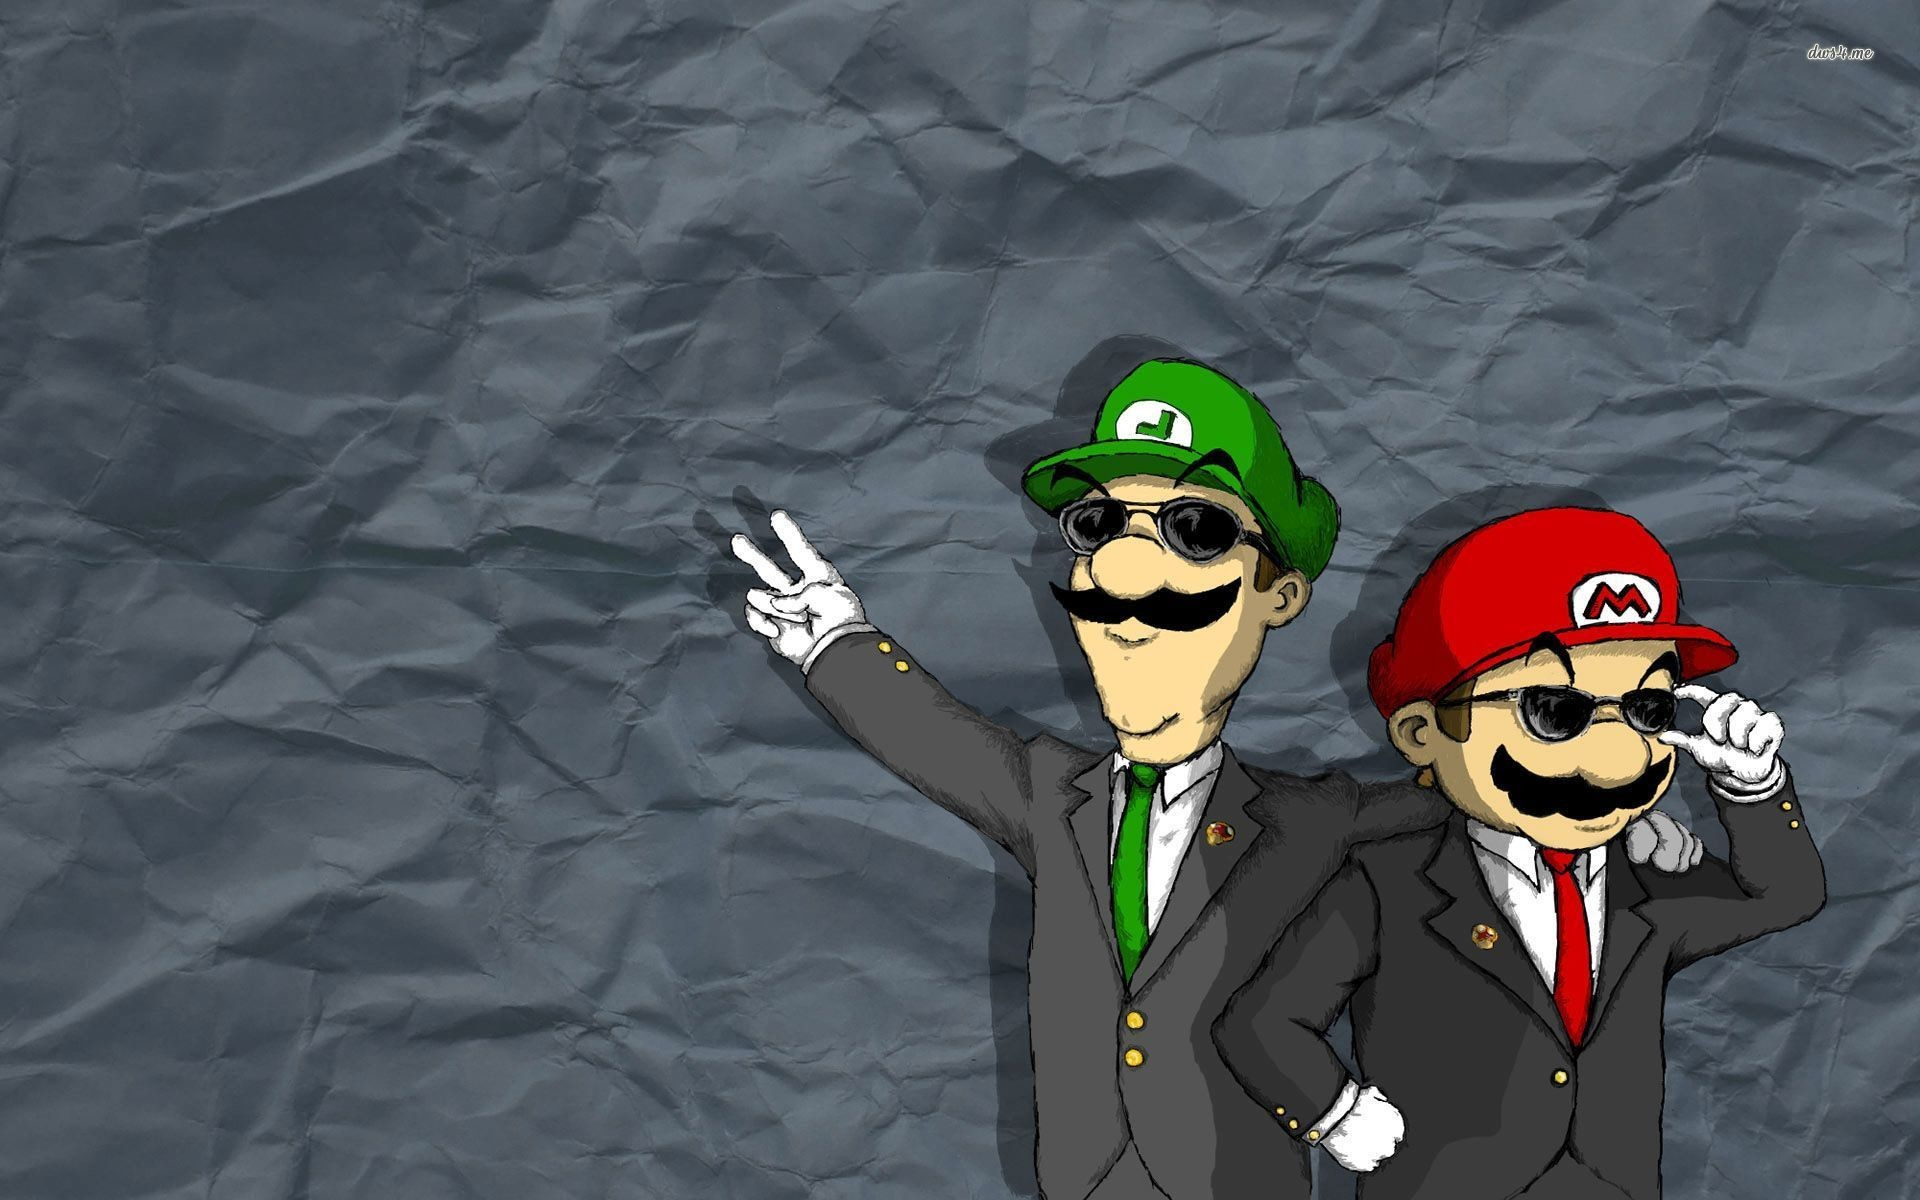 1920x1200 Mario and Luigi wallpaper - Game wallpapers - #28843